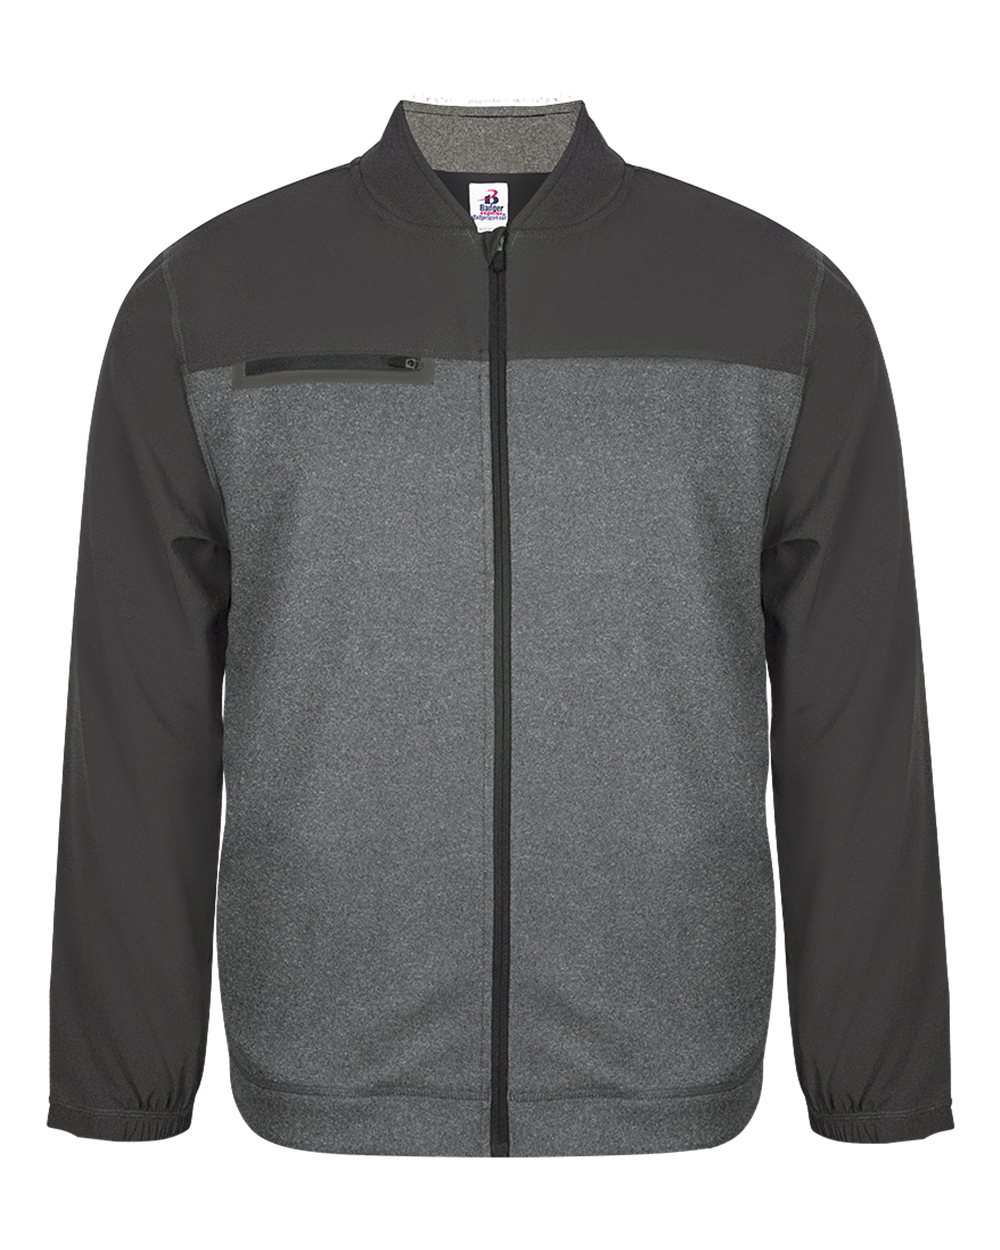 Victory Jacket - Steel Heather/Graphite